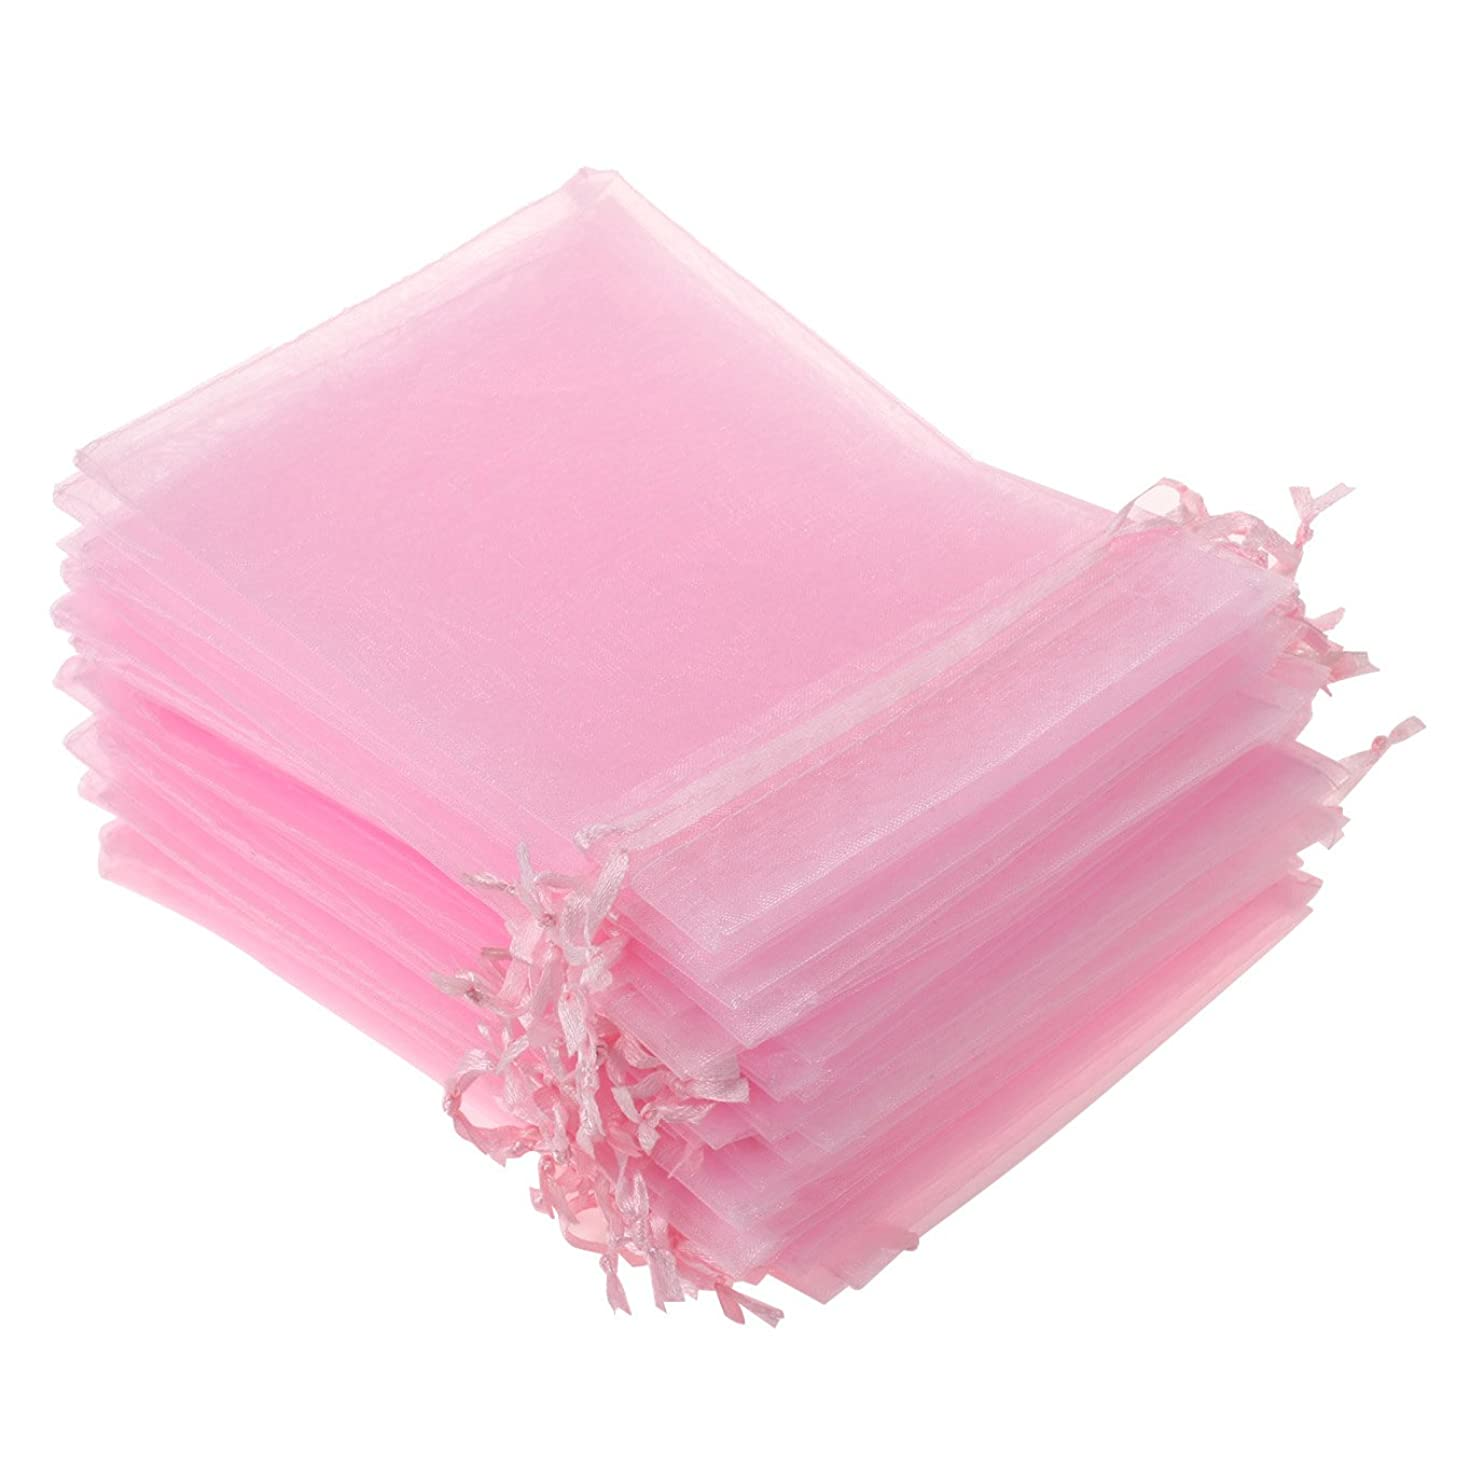 KUPOO Pack of 50PCS 8x12 Inch Organza Drawstring Gift Bag Pouch Wrap for Party/Game/Wedding (Pink)